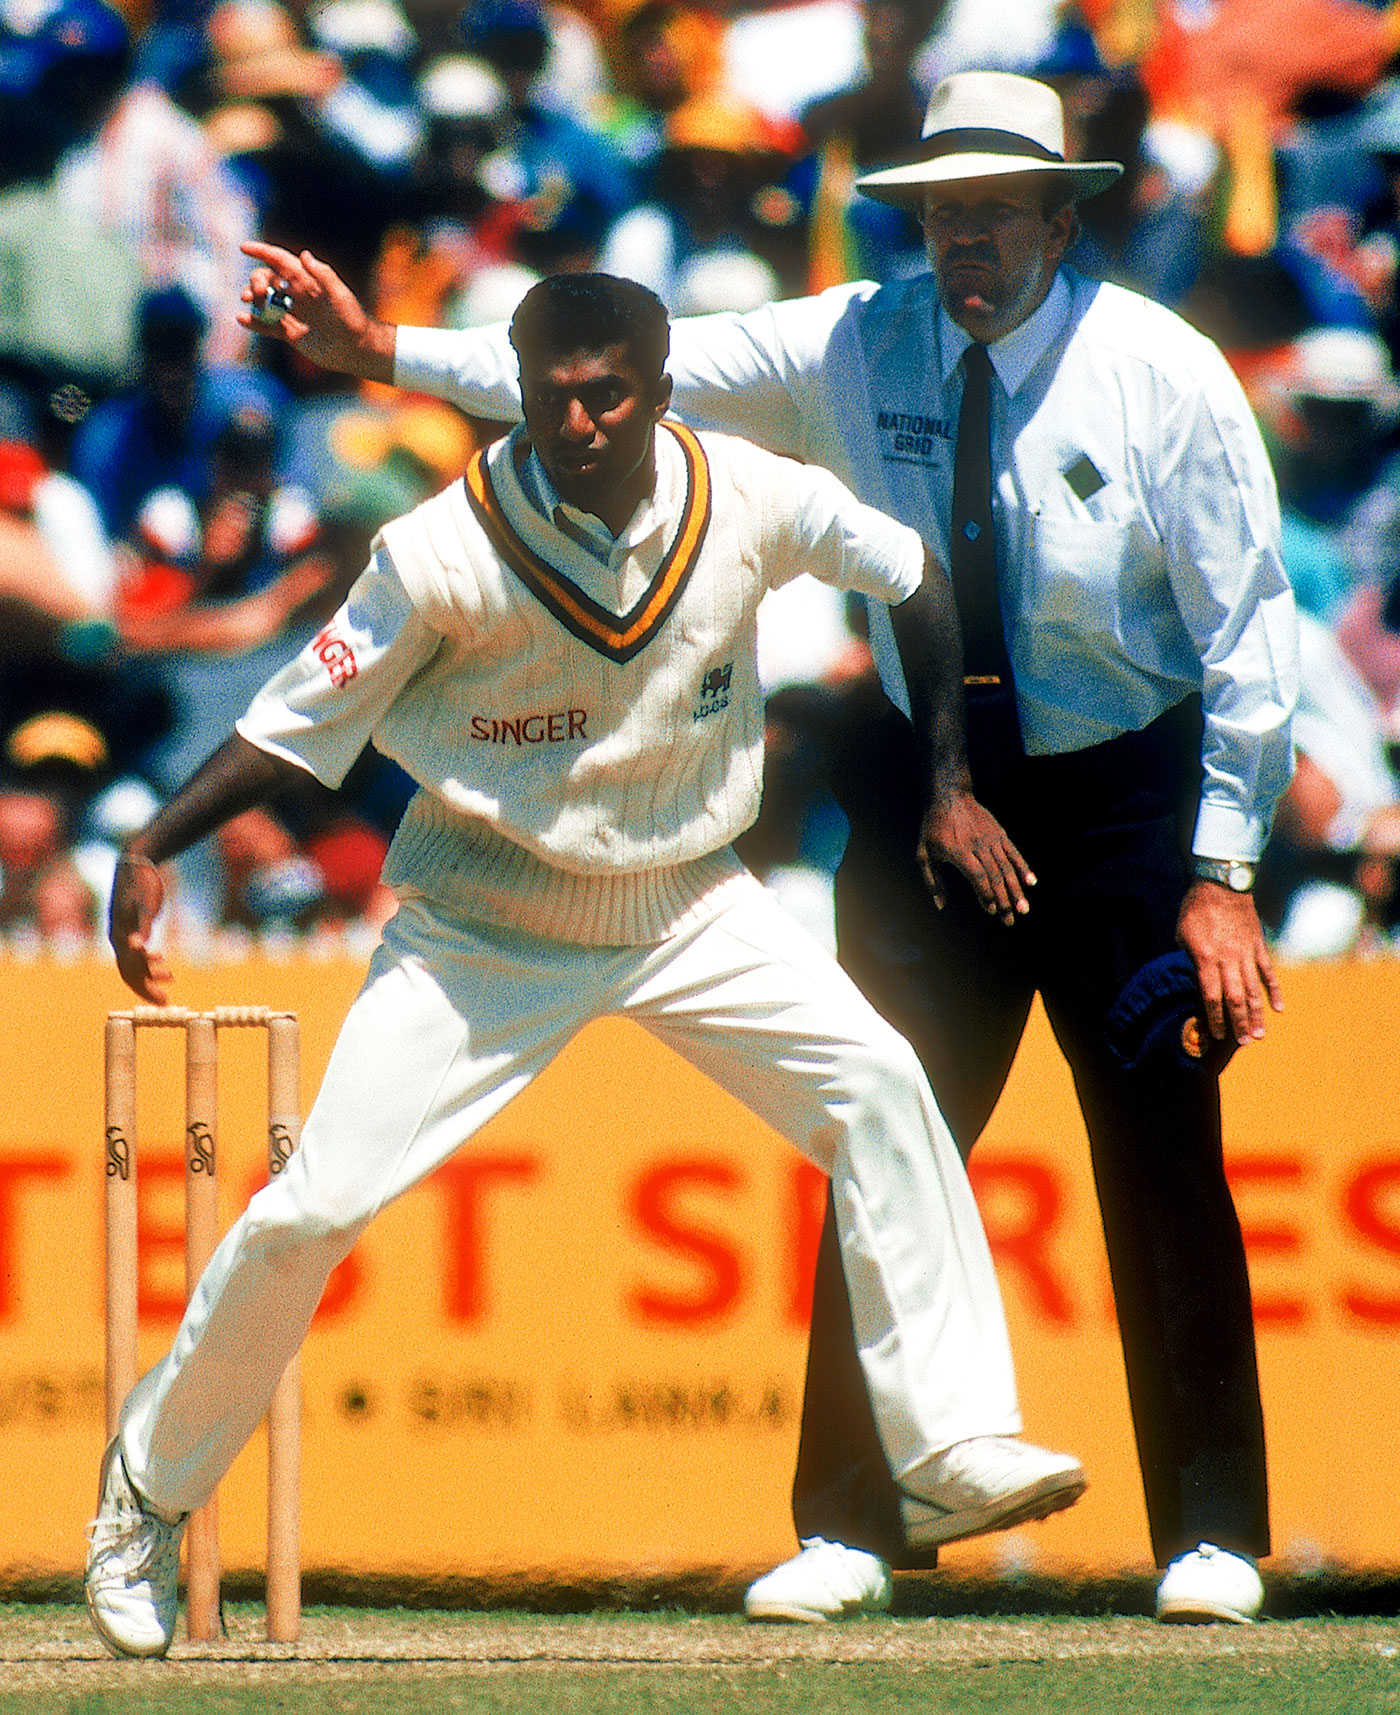 Darrell Hair no-balls Muttiah Muralitharan, Australia v Sri Lanka, 1st Test, Melbourne, 1st day, December 26, 1995